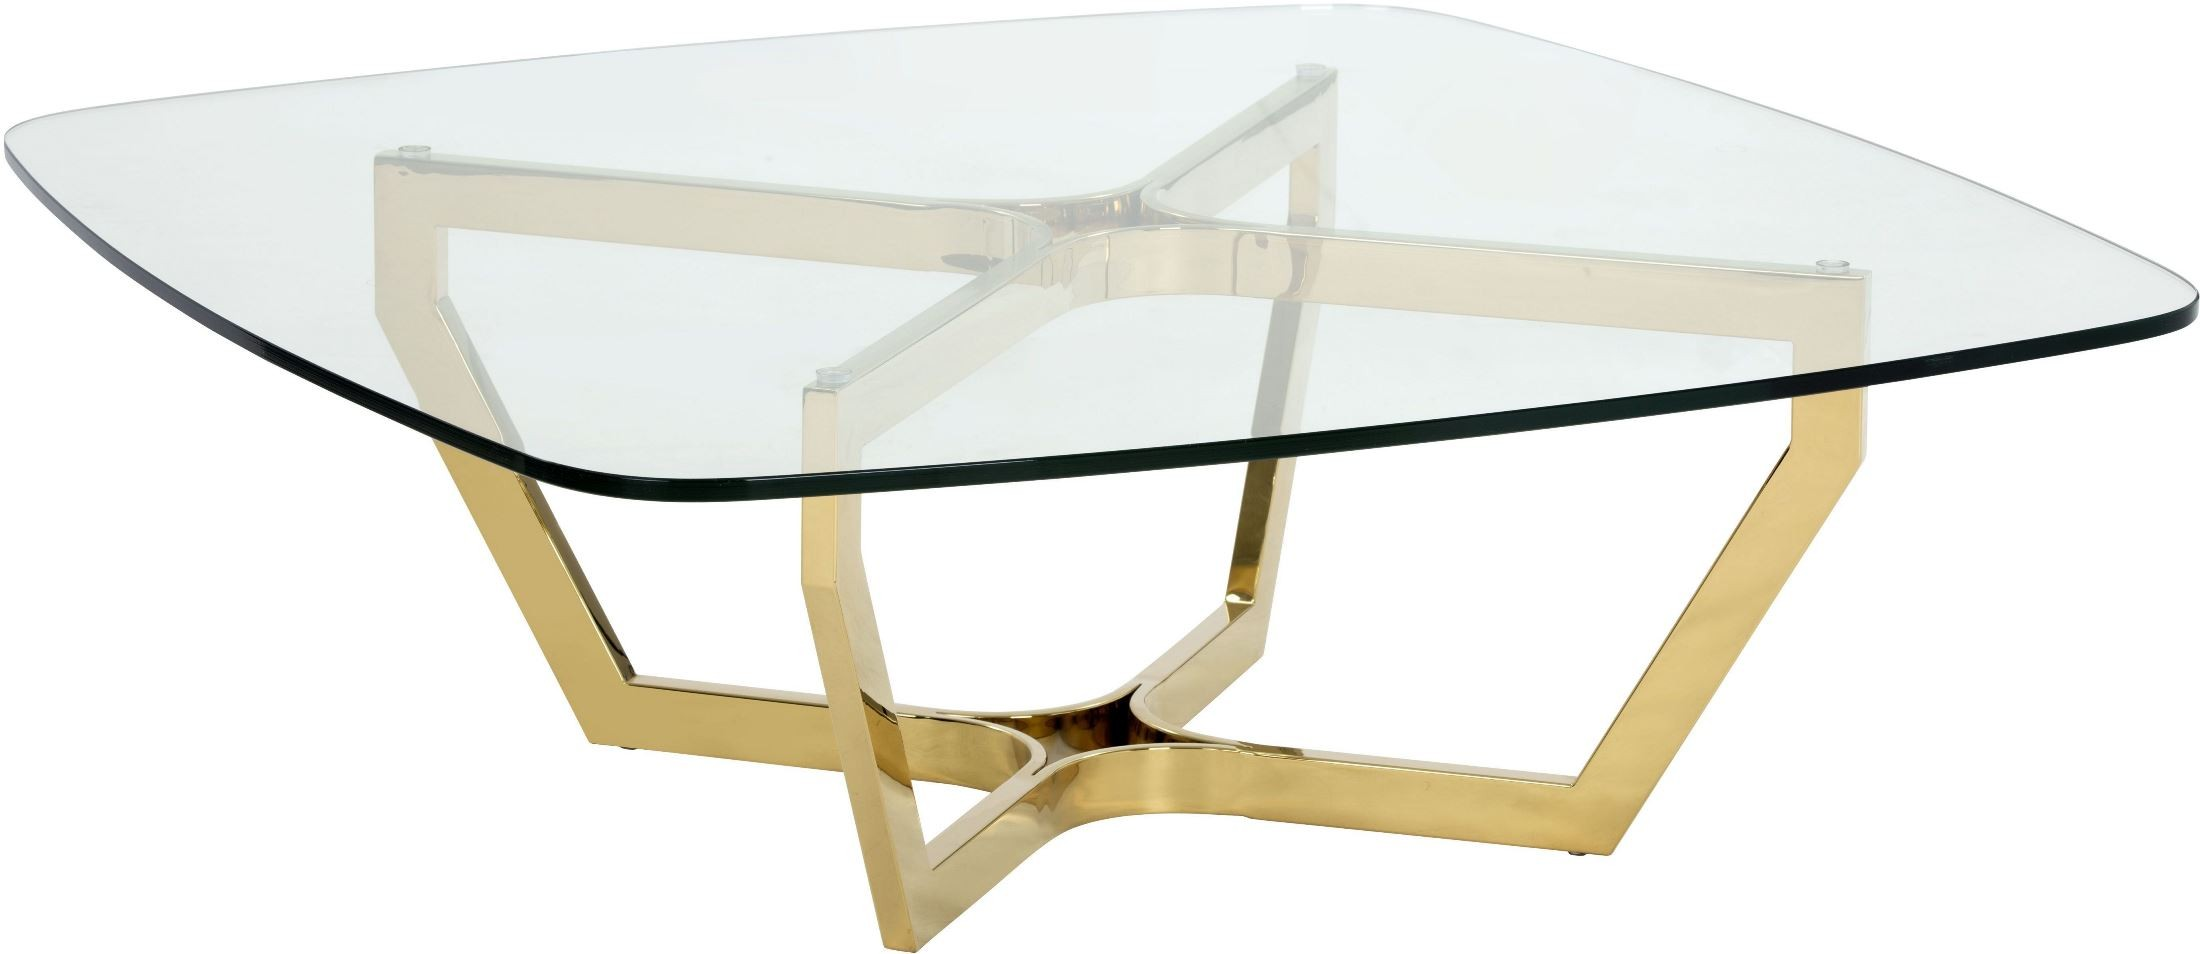 Archer yellow gold metal coffee table 101264 sunpan modern home Gold metal coffee table